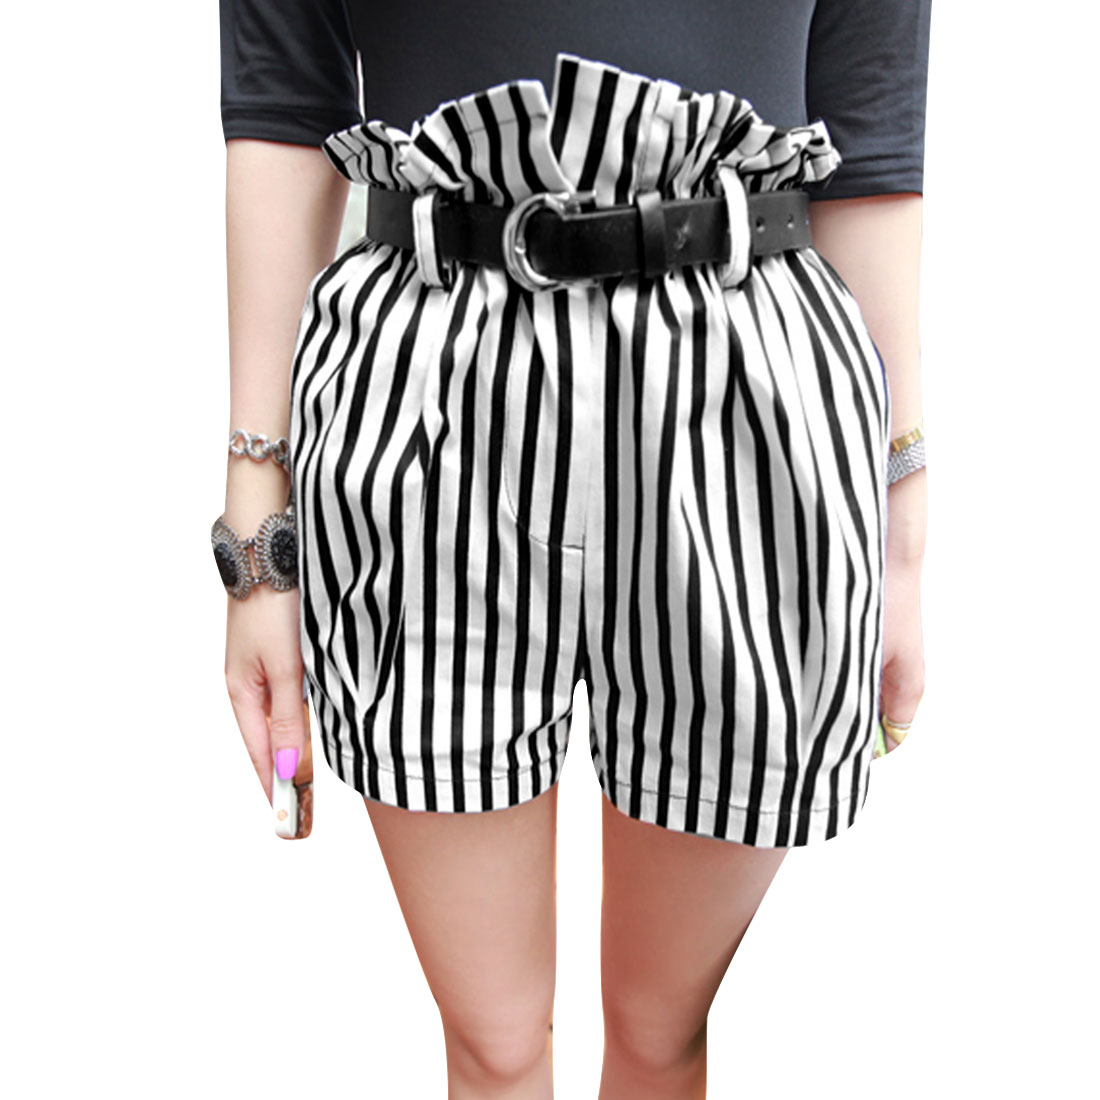 Women Waistband Loop Zip Up Pockets Stripes Shorts Black White XS